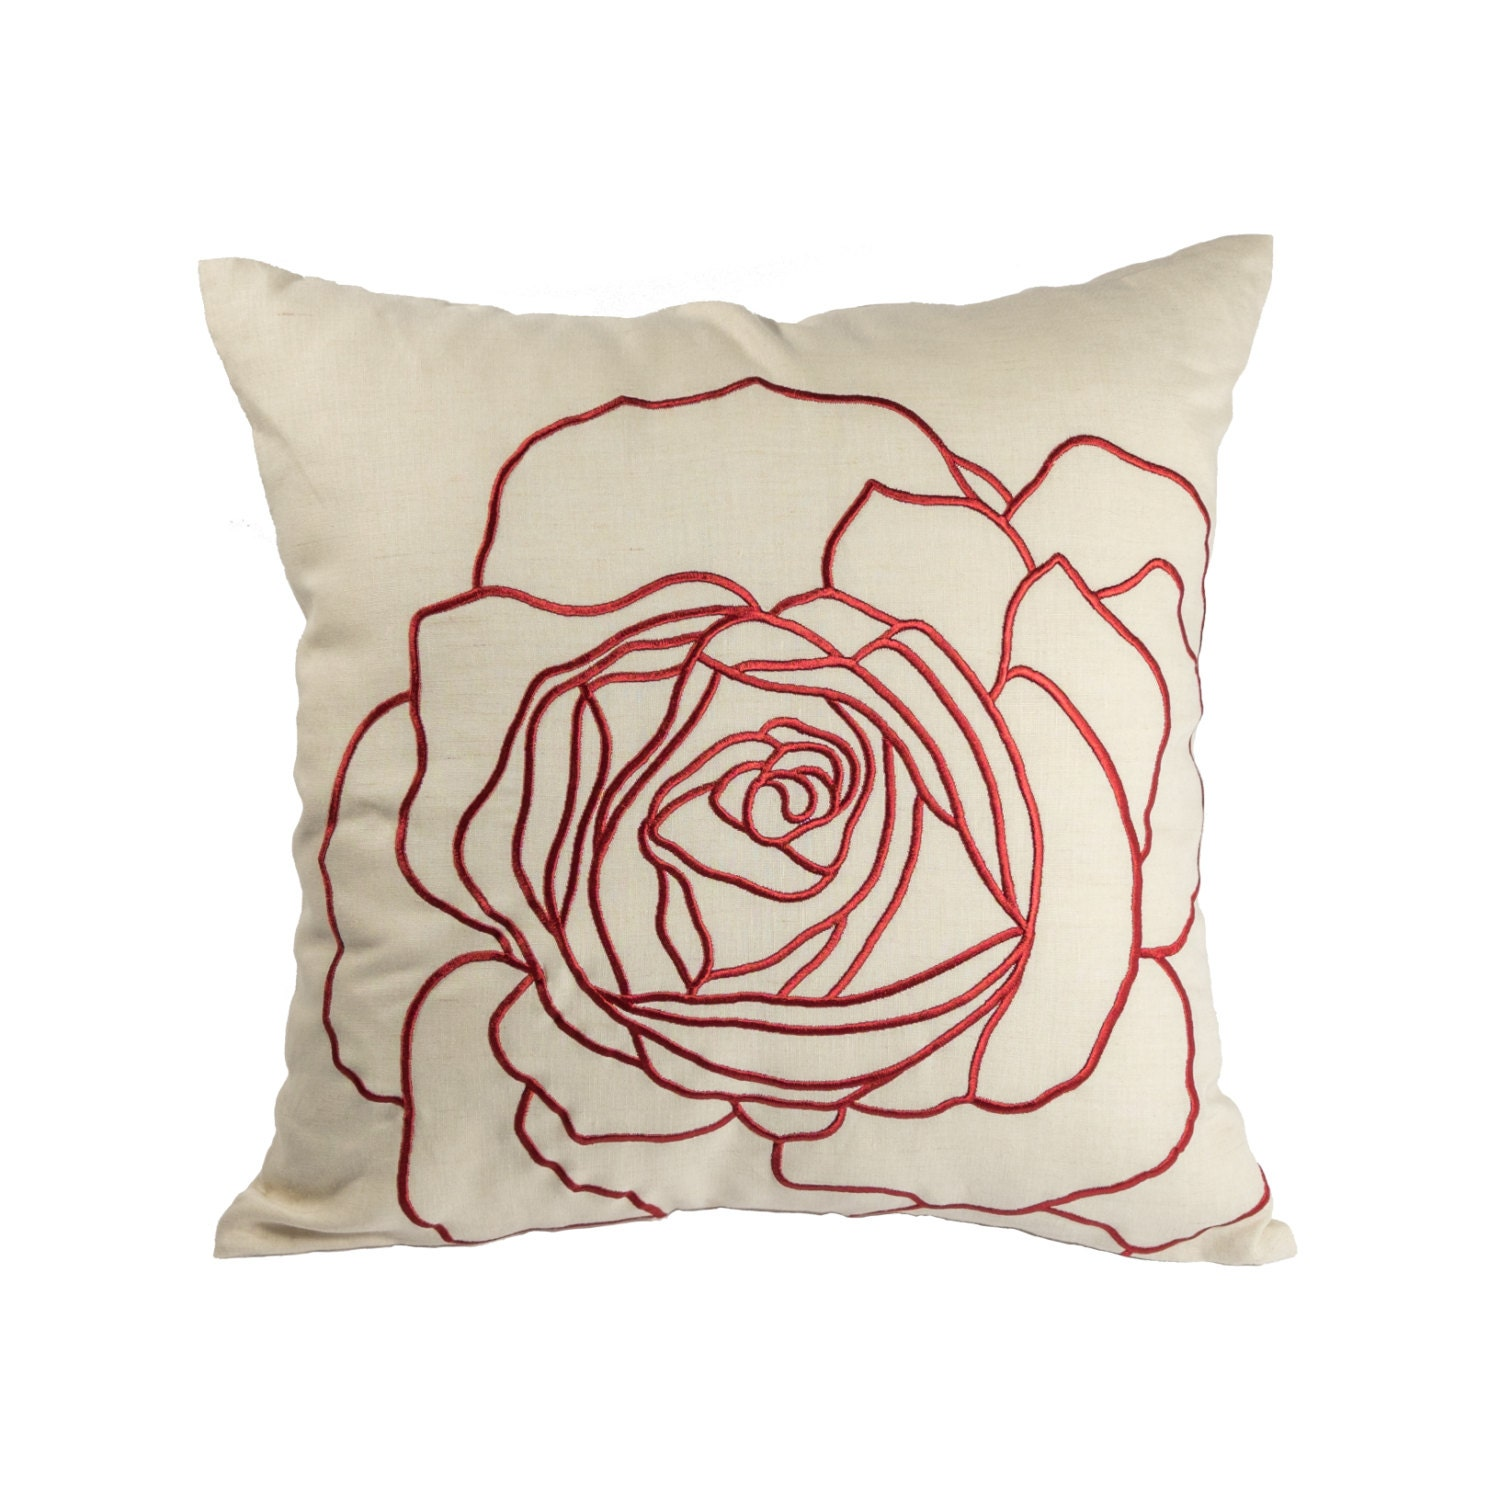 Decorative Pillows Etsy : Red Rose pillow Cover Throw Pillow Cover Decorative Pillow